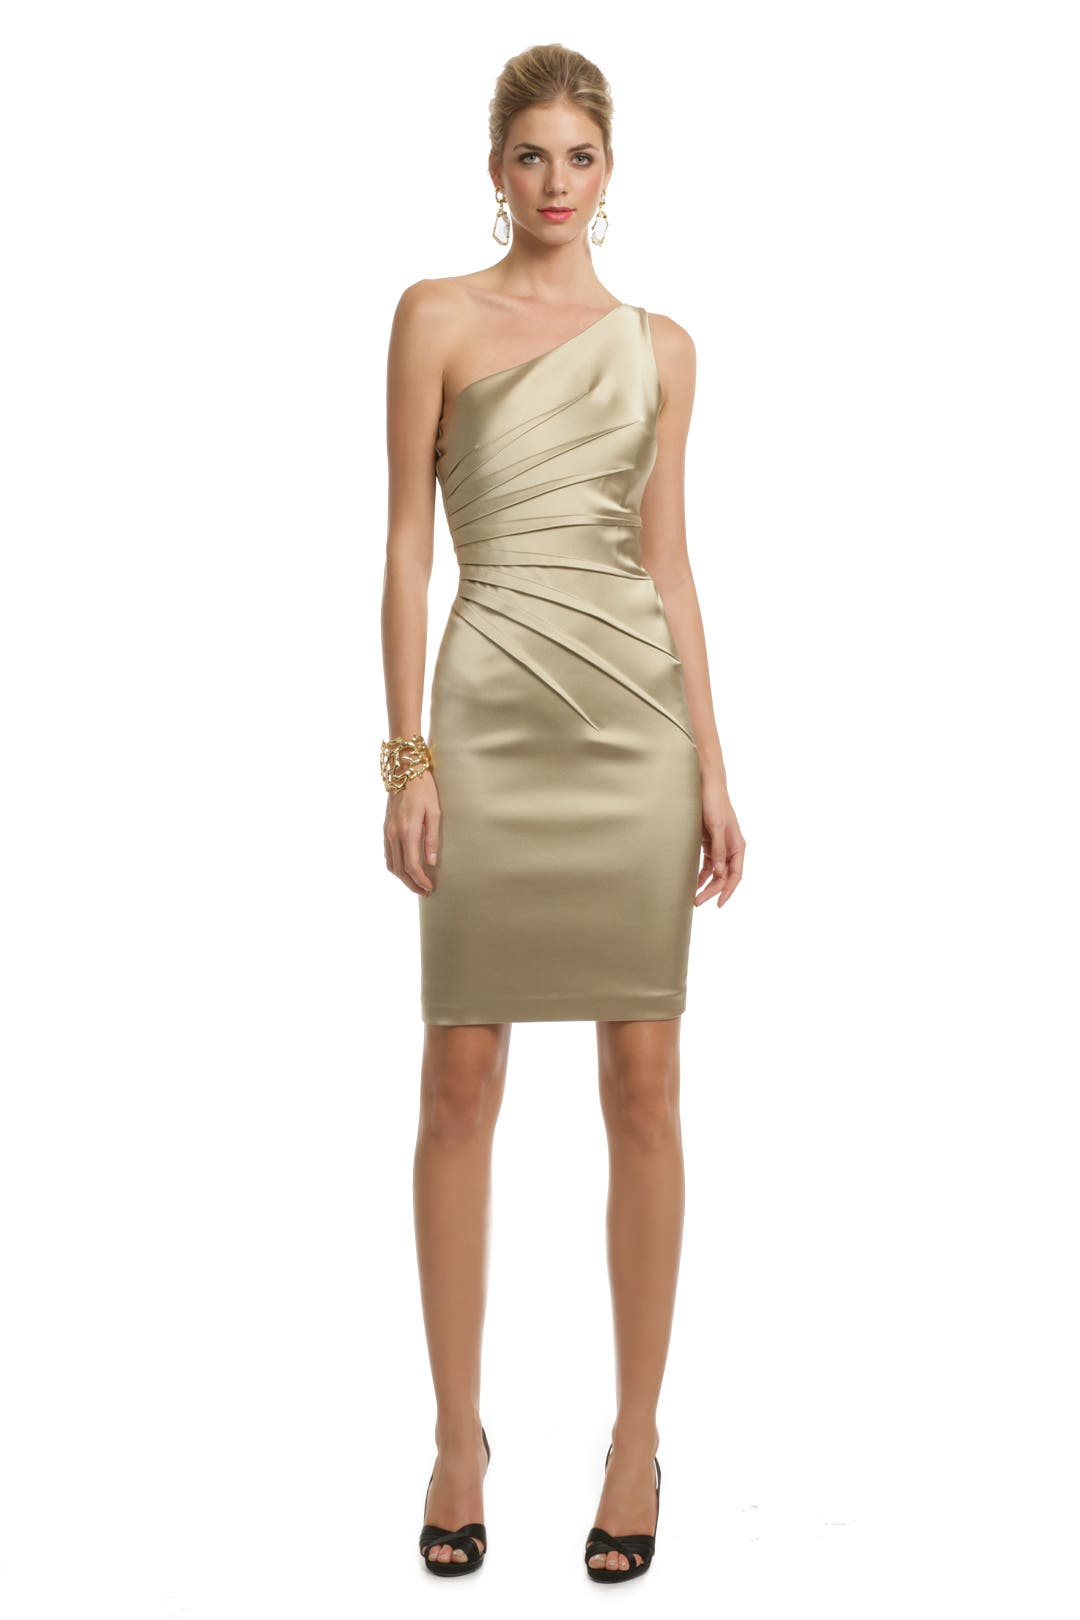 Mod Cleopatra Dress by David Meister